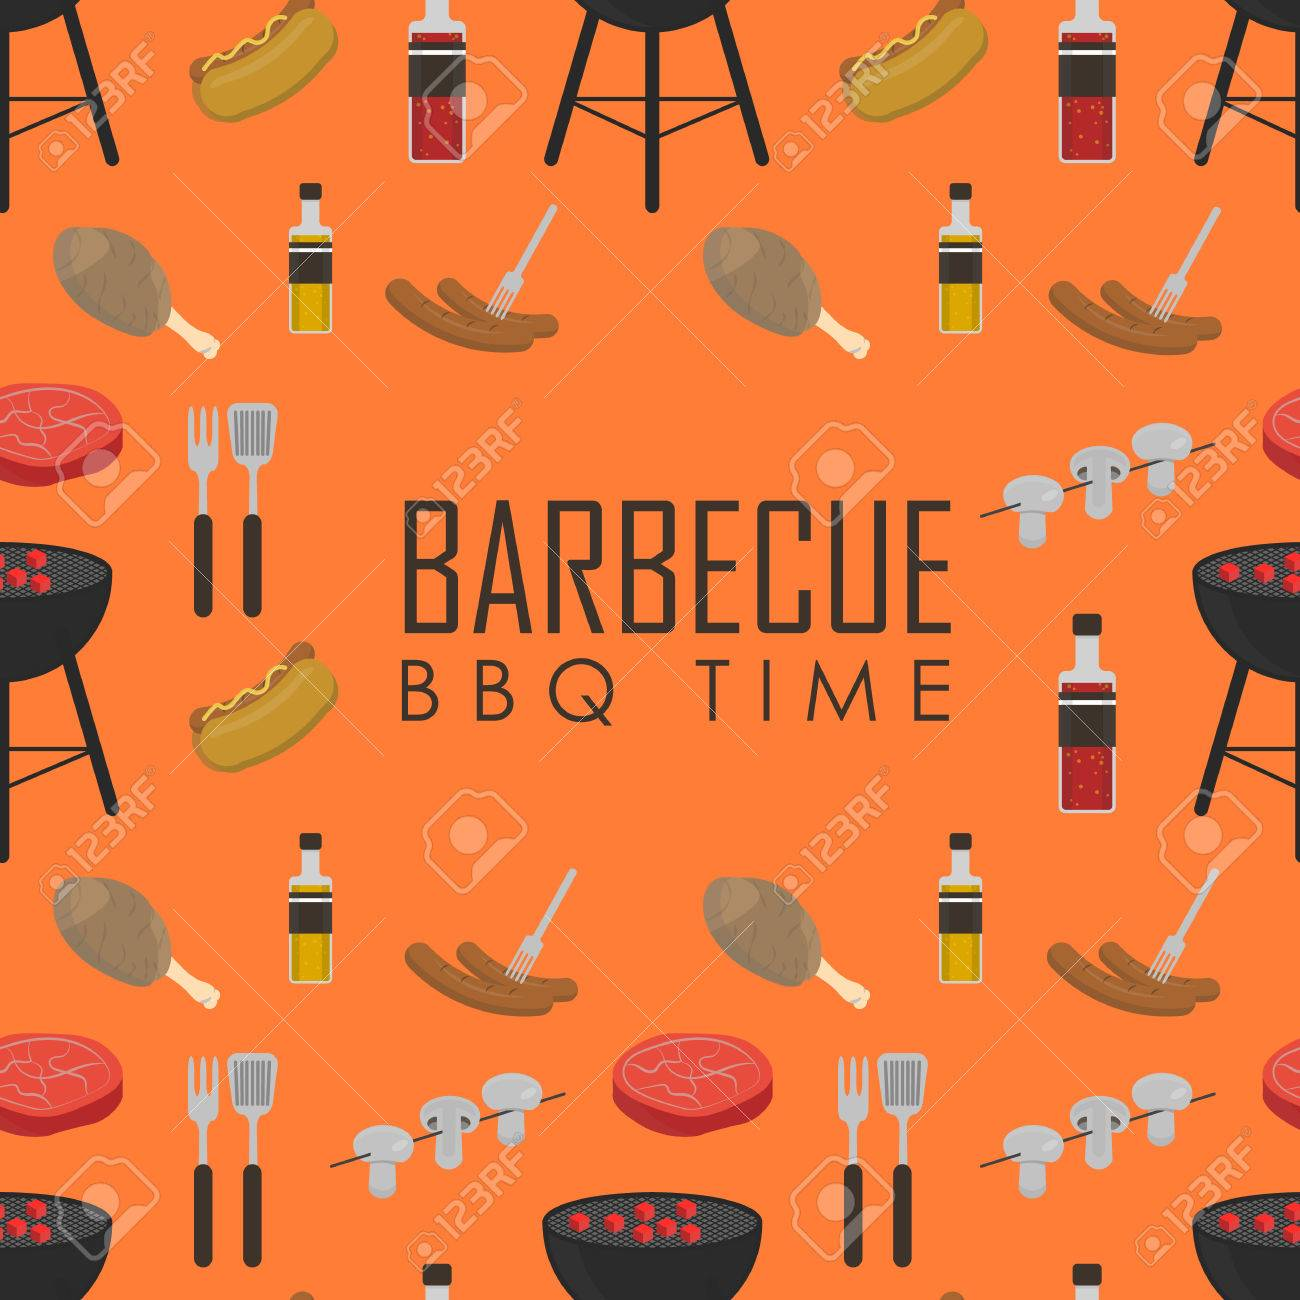 Bbq time vector illustrations barbecue seamless pattern with grill bbq time vector illustrations barbecue seamless pattern with grill and food design elements around text stopboris Choice Image